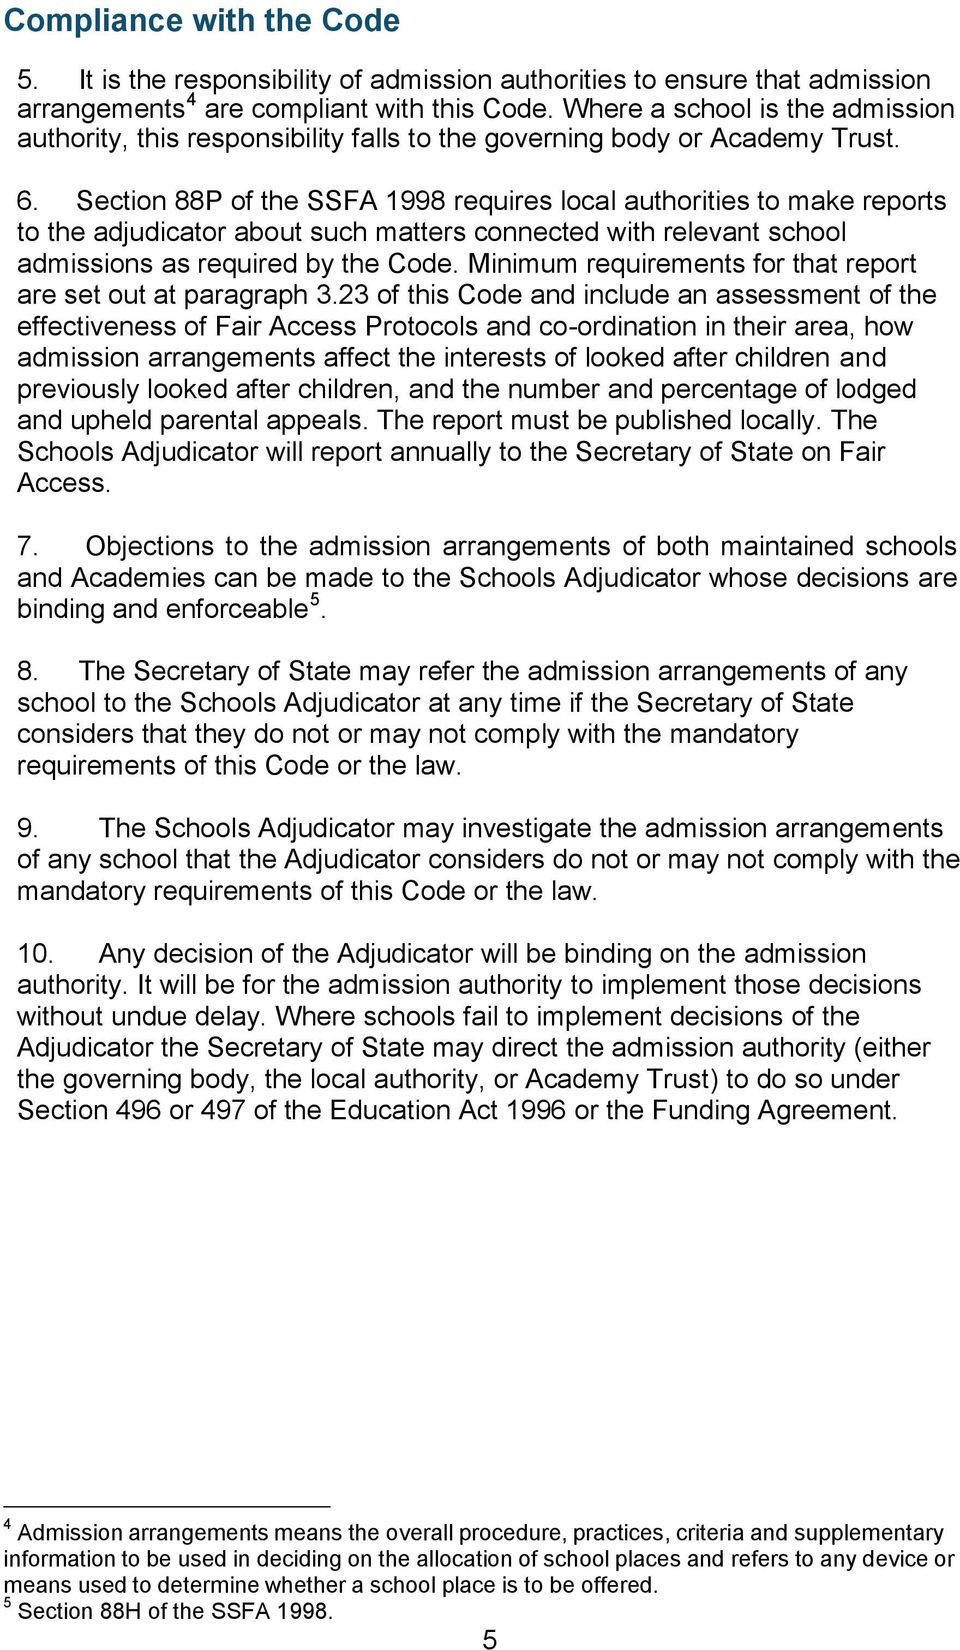 Section 88P of the SSFA 1998 requires local authorities to make reports to the adjudicator about such matters connected with relevant school admissions as required by the Code.